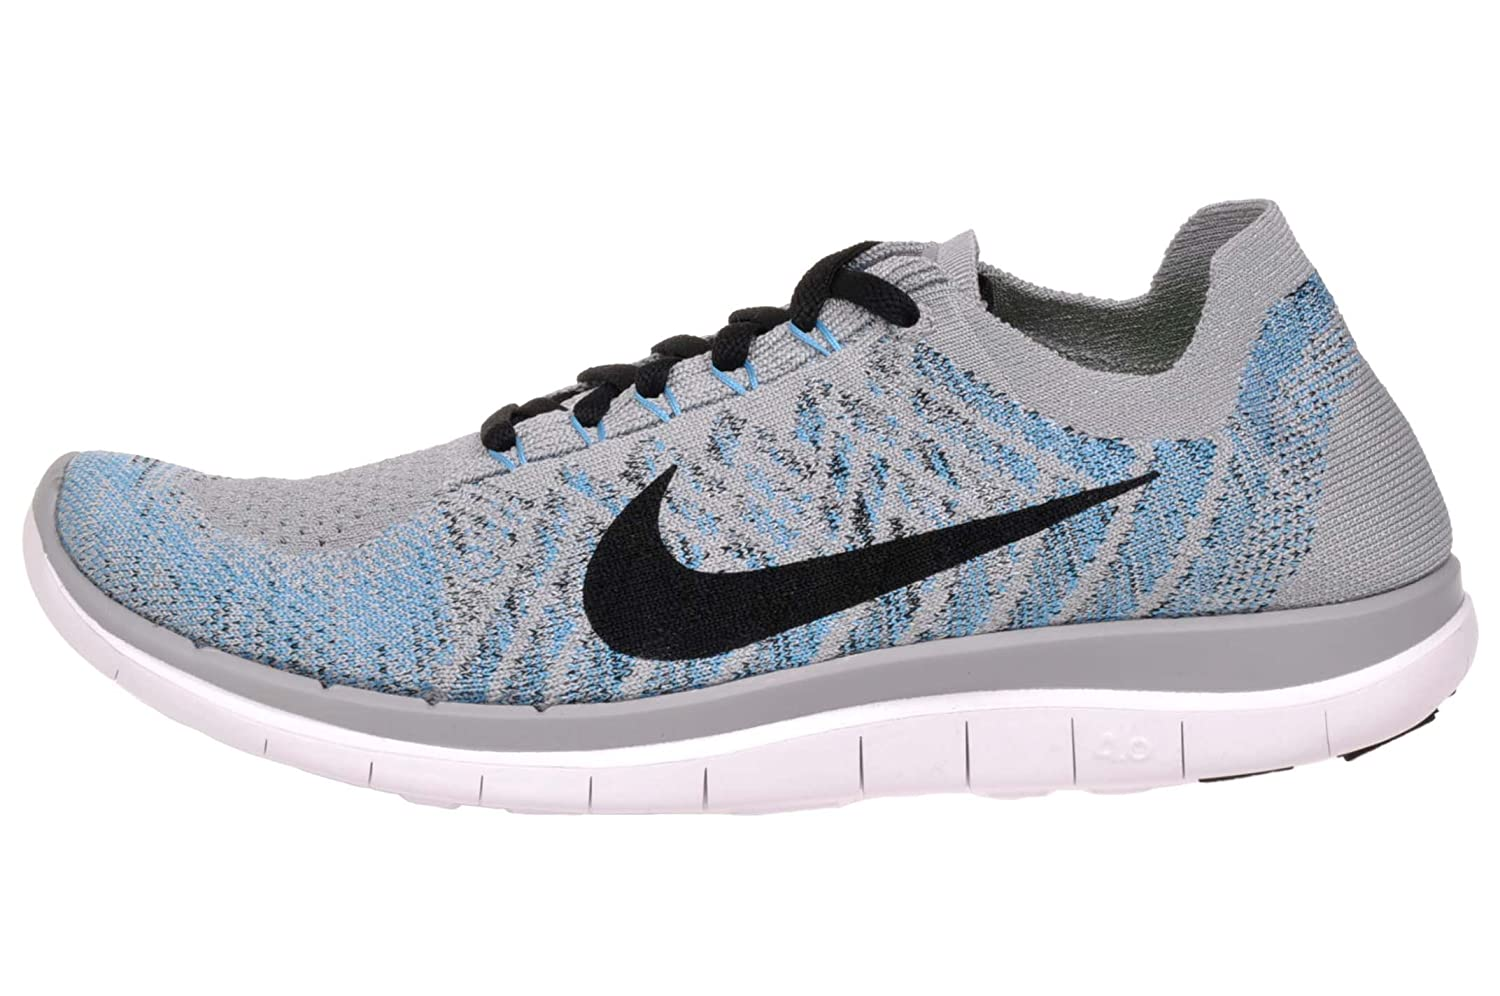 View Nike Free 4.0 Grey Background